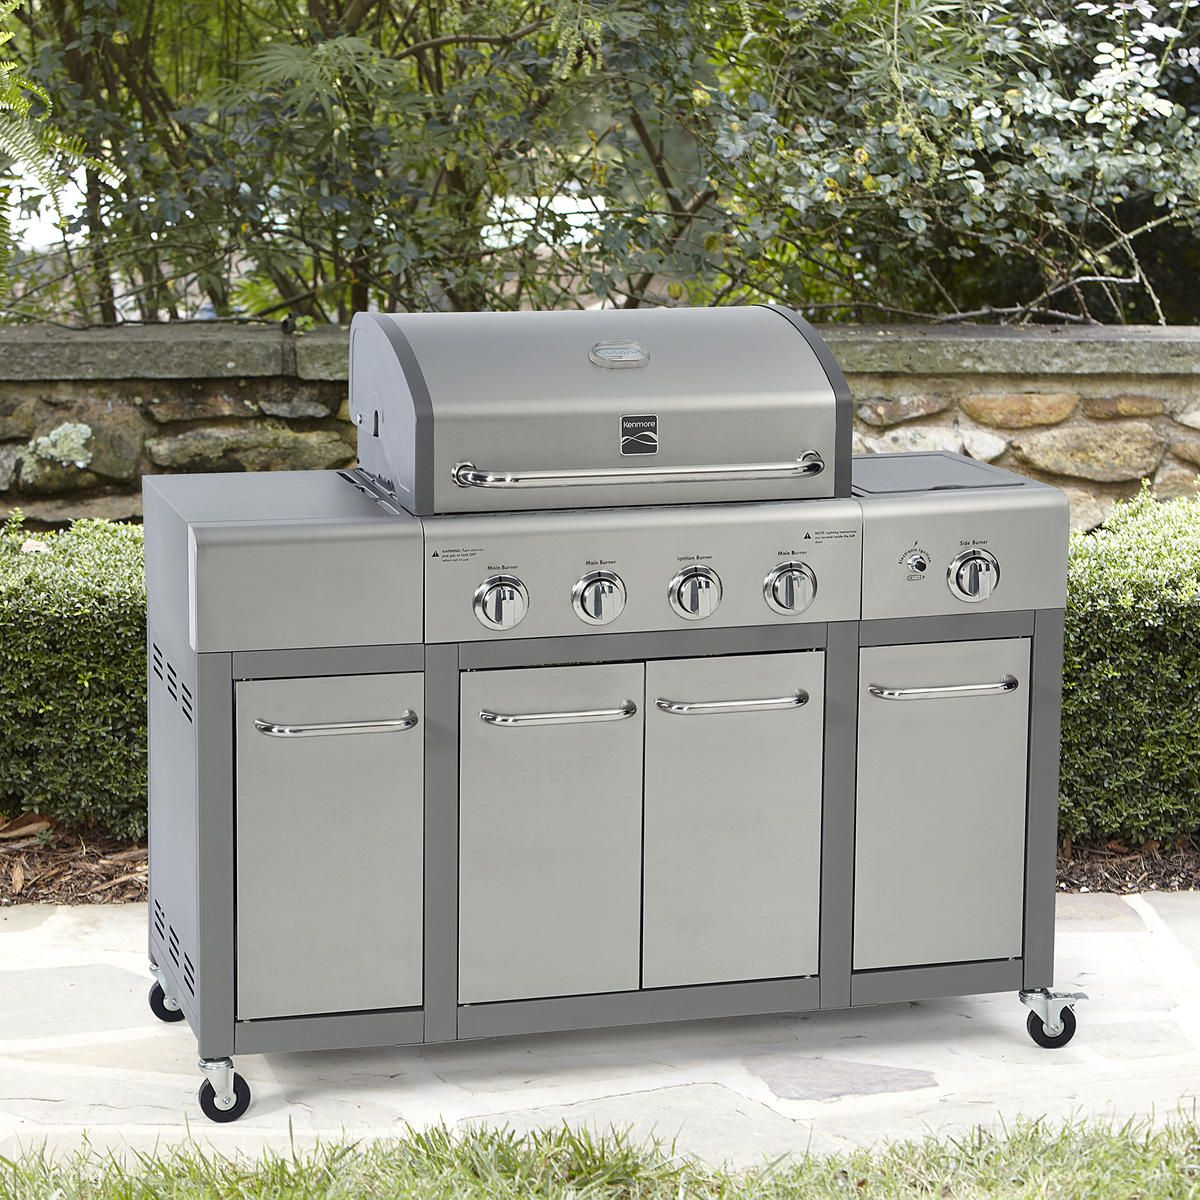 Kenmore Pg 40407solf 4 Burner Gas Grill With Storage Stainless Steel Sears Hometown Stores Gas Grill Best Gas Grills Outdoor Kitchen Cabinets